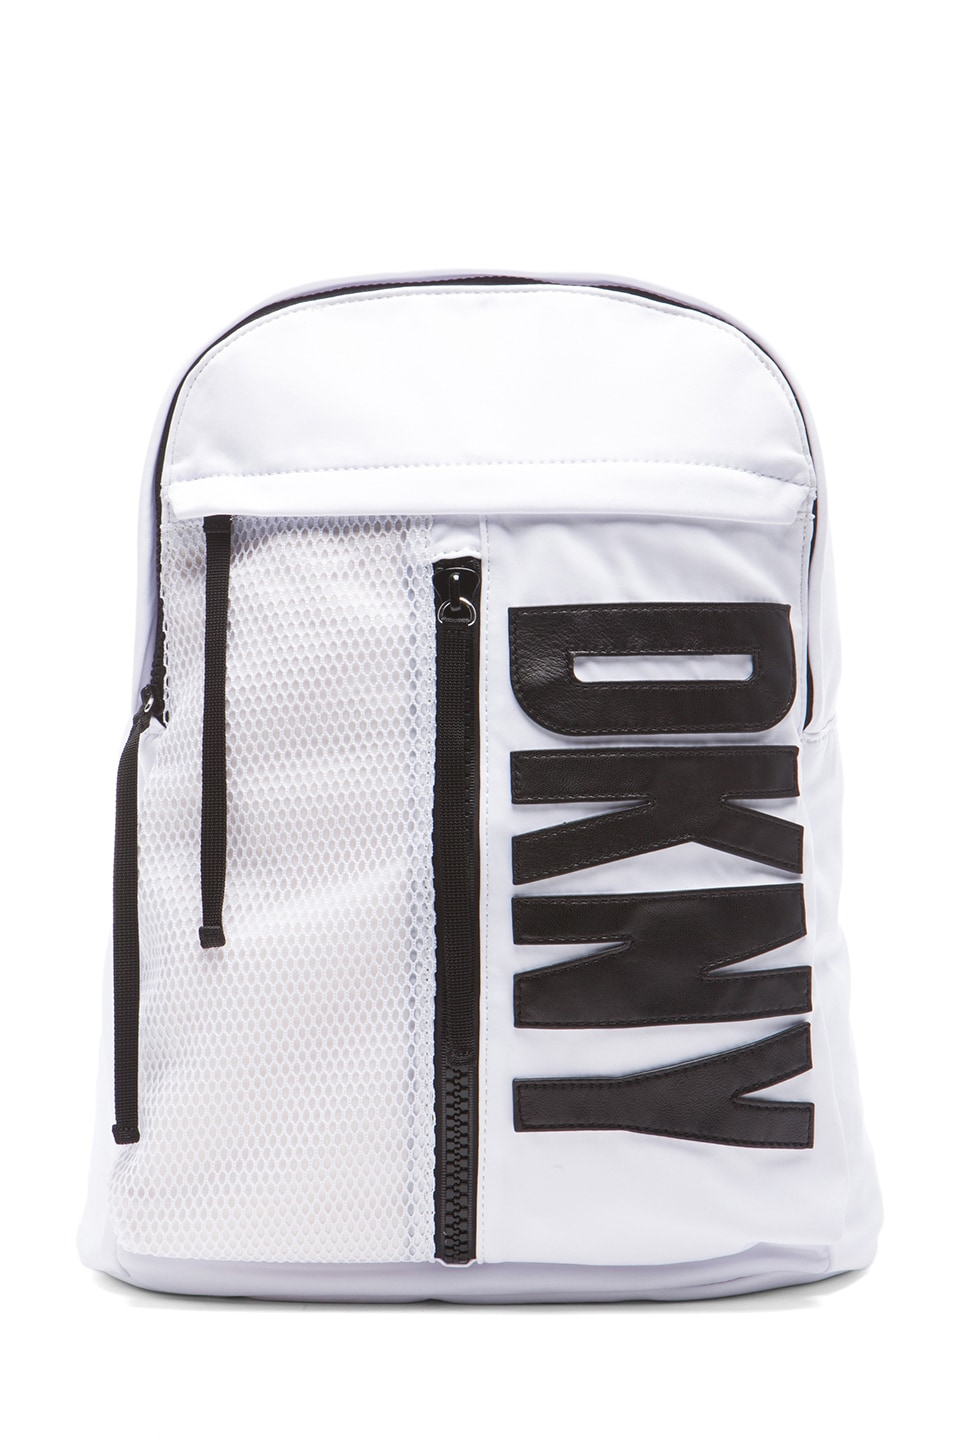 Image 1 of Opening Ceremony x DKNY Backpack in White & Black